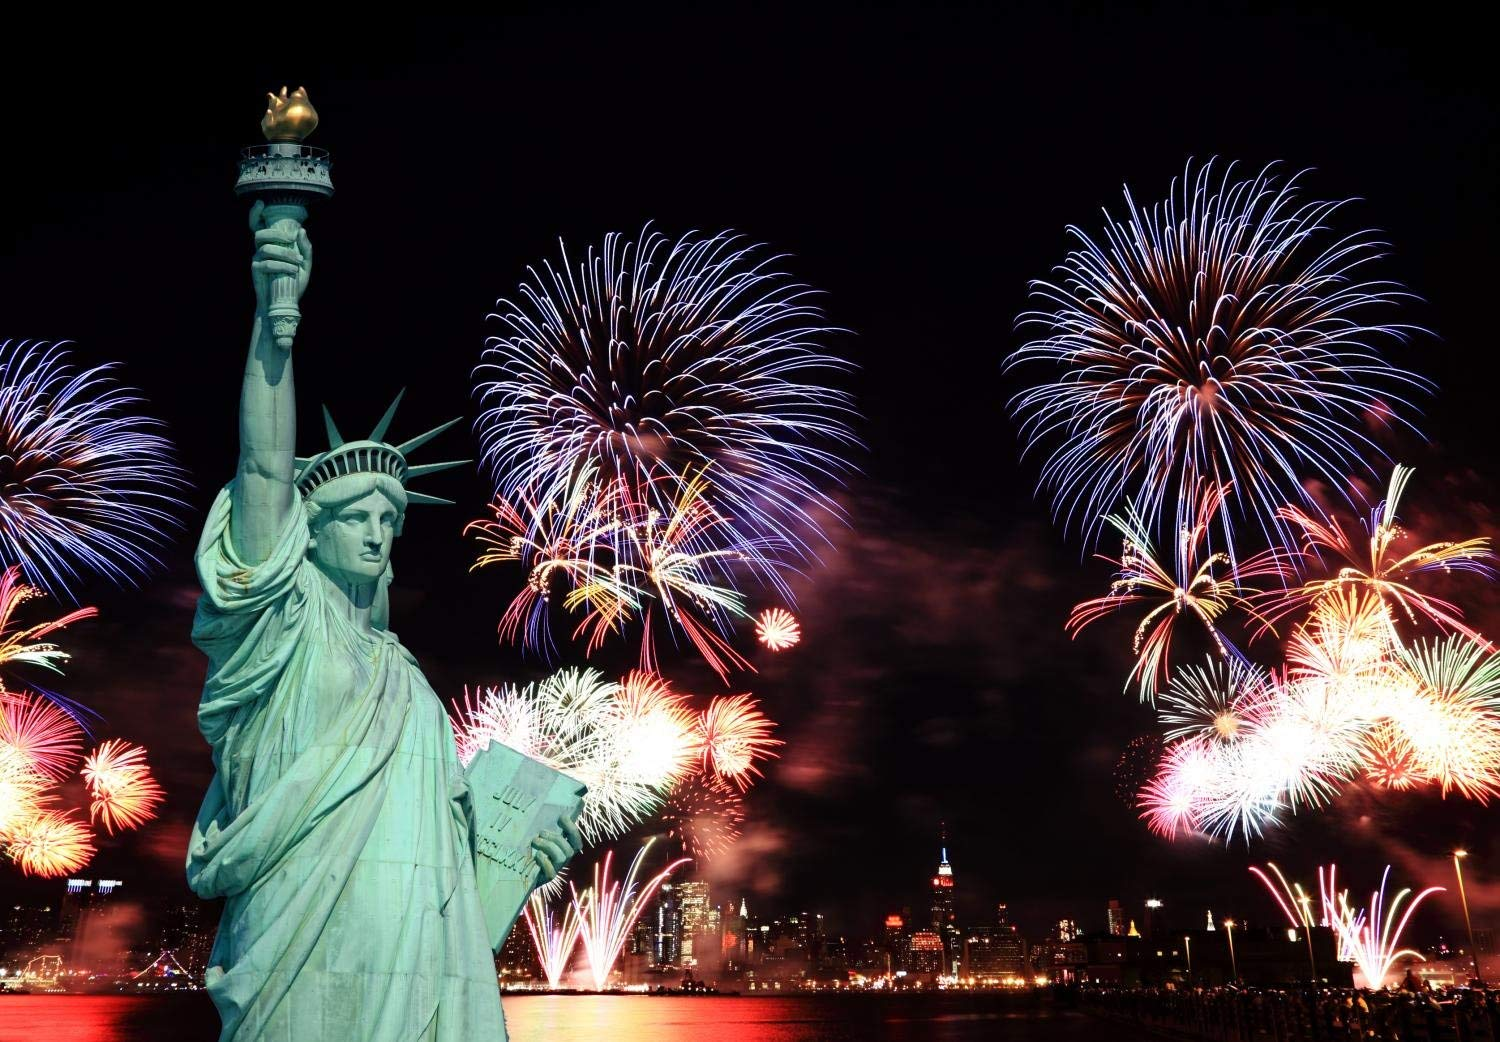 July 4th Statue of Liberty